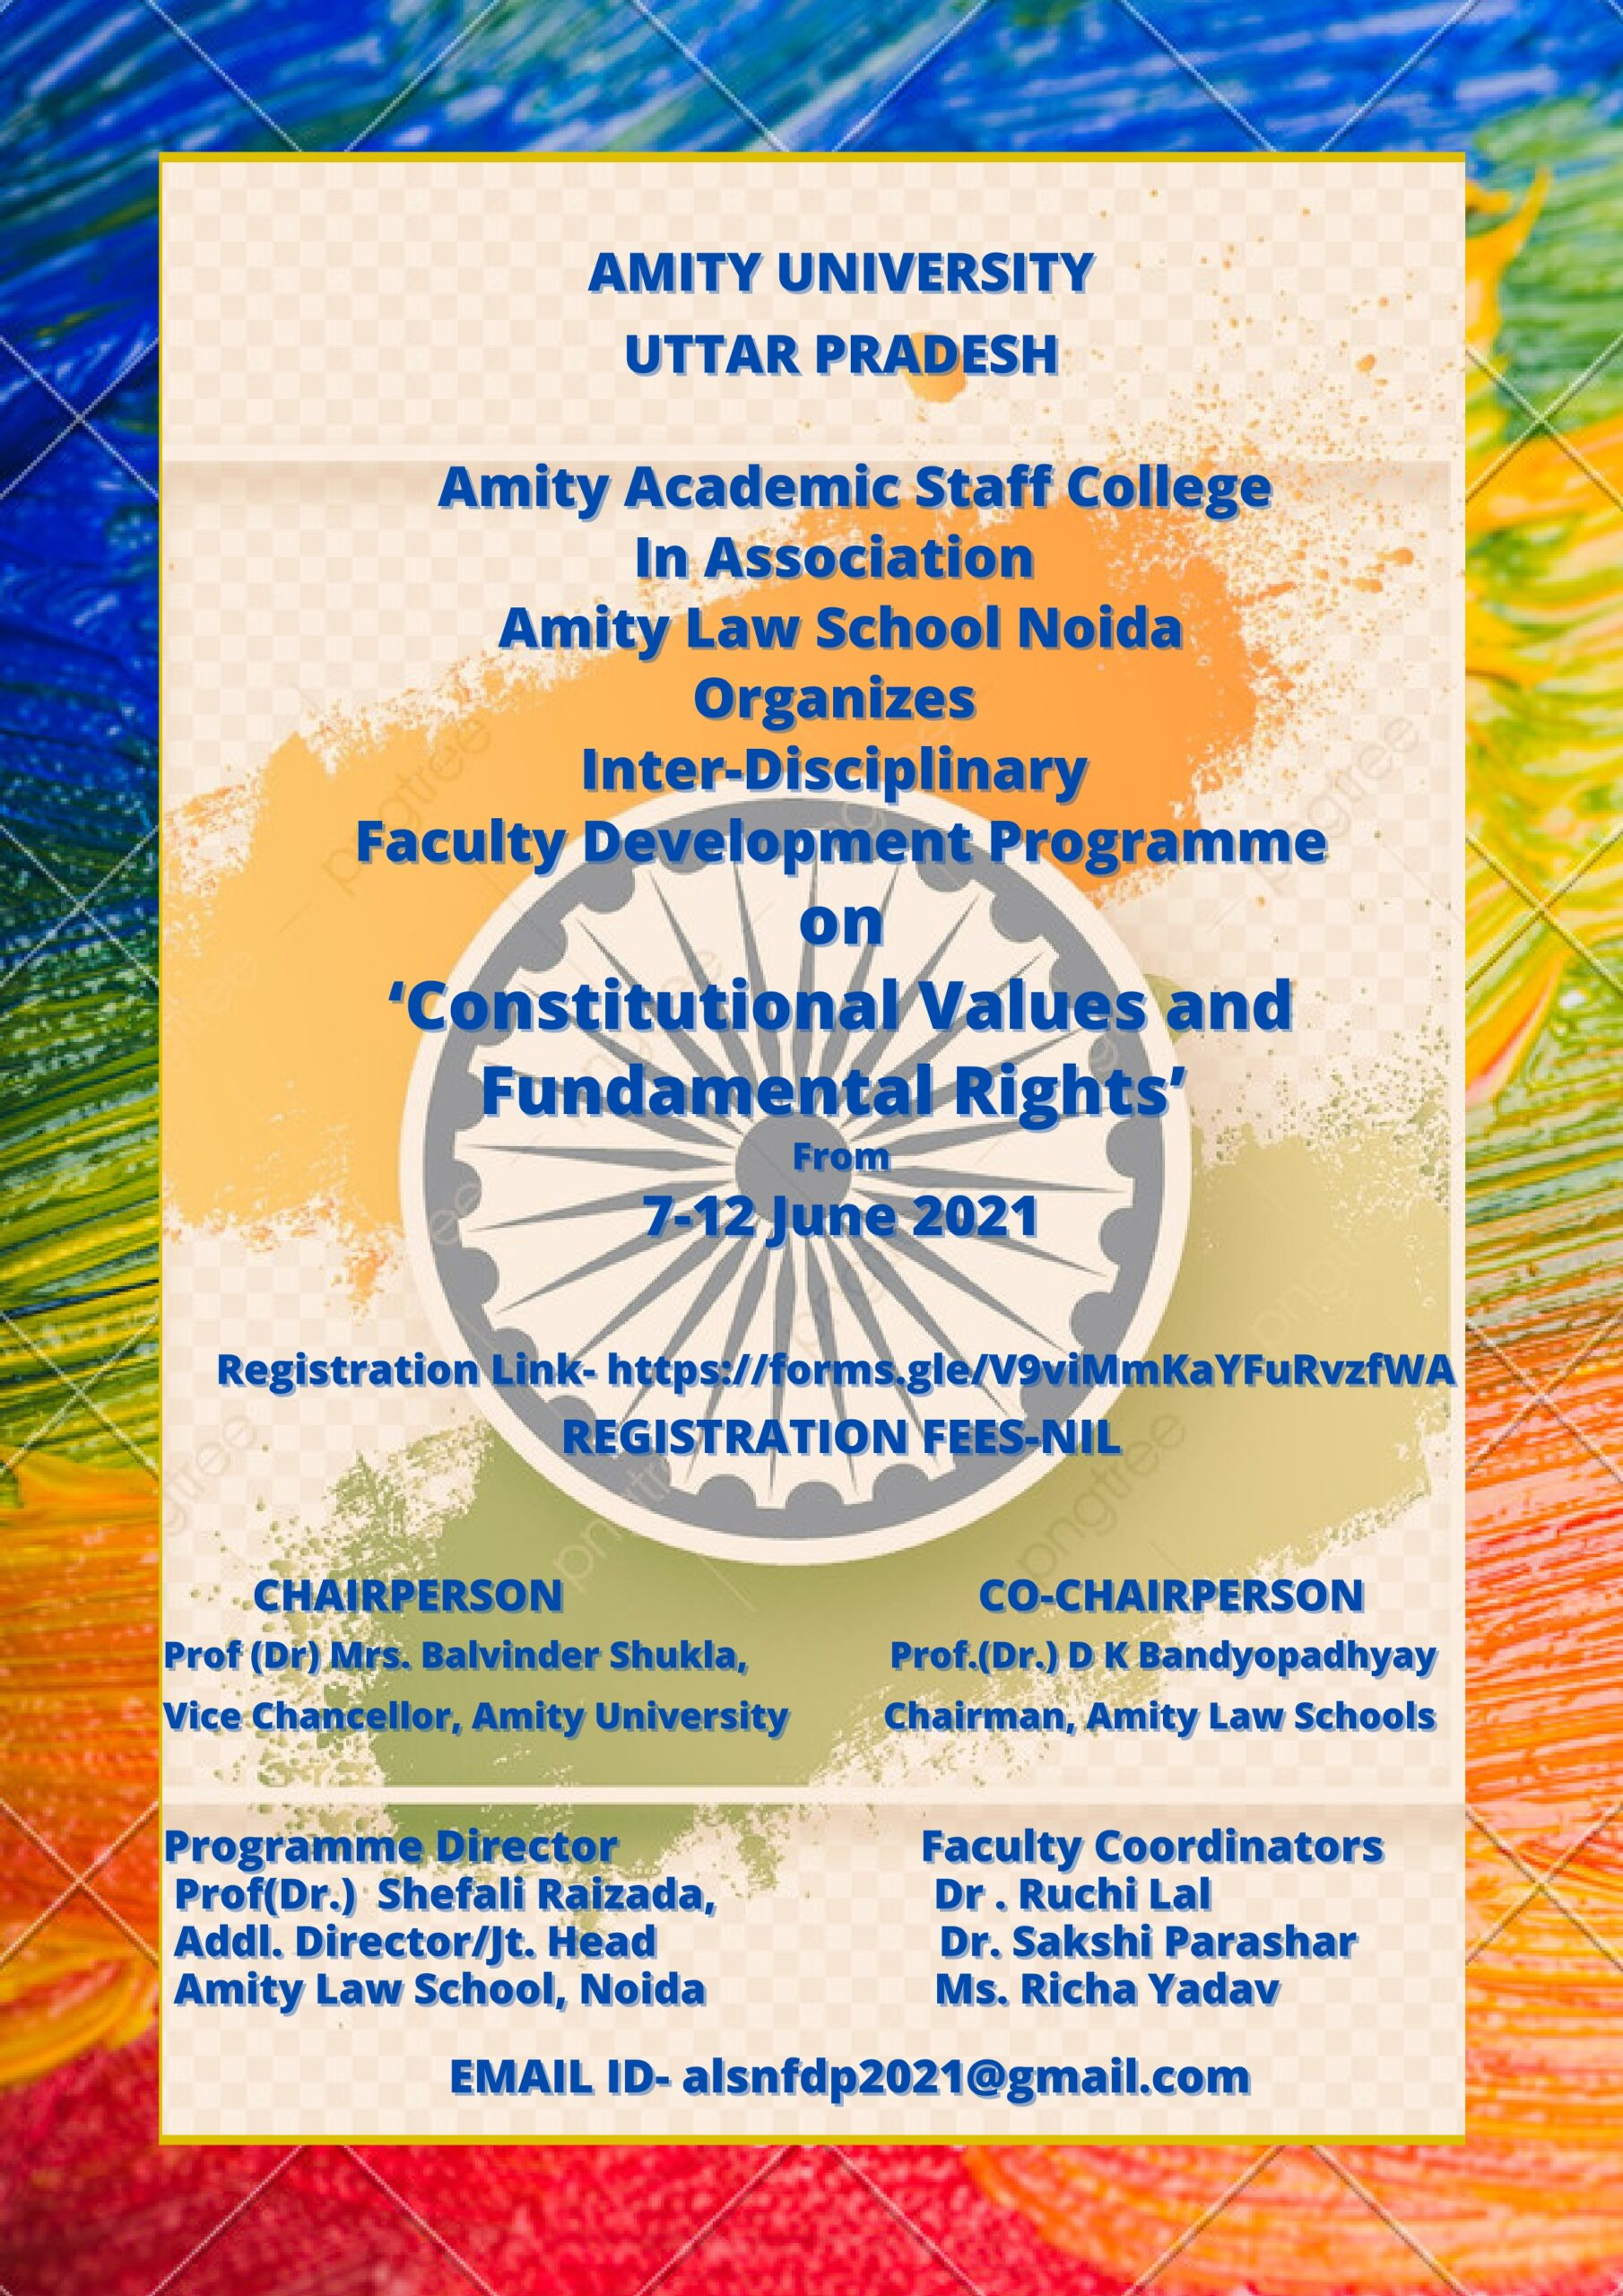 Inter-Disciplinary Faculty Development Programme On 'Constitutional Values and Fundamental Rights' organized by Amity Academic Staff College in association with Amity Law School, Amity University, Noida from 7th June-12th June,2021 (Virtual); Last date of registration -4th June 2021